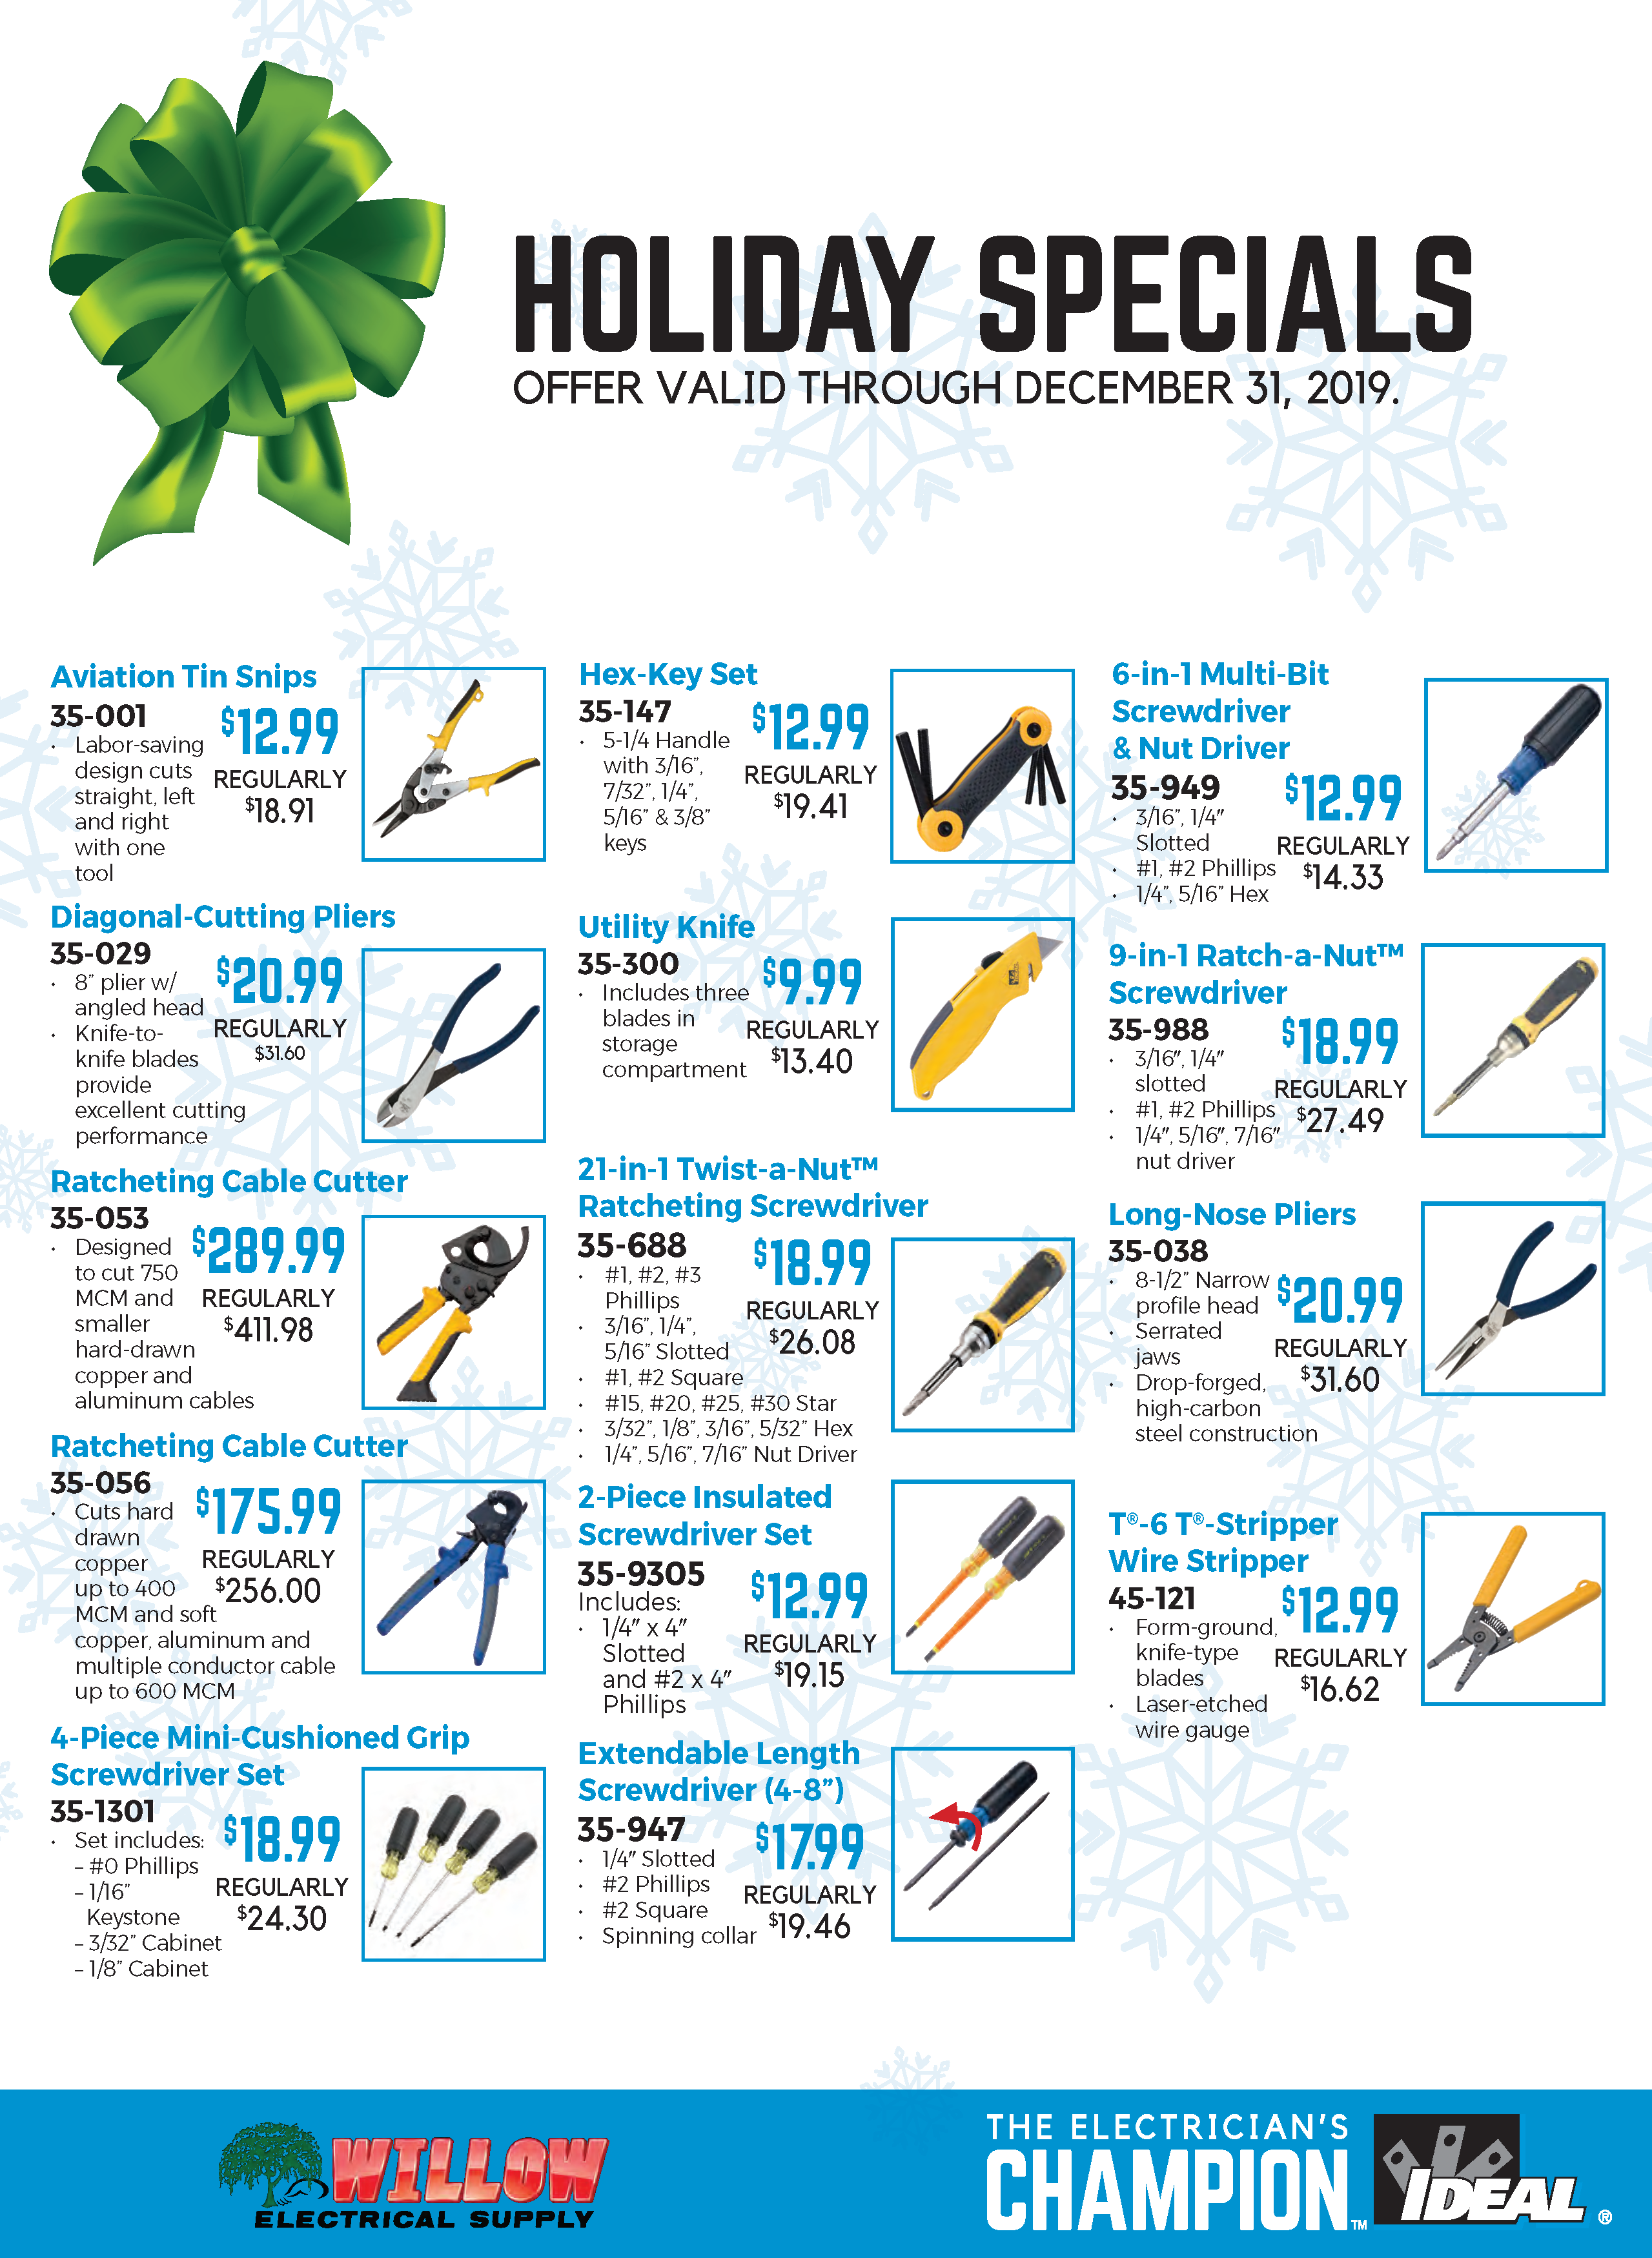 IDEAL Holiday Special